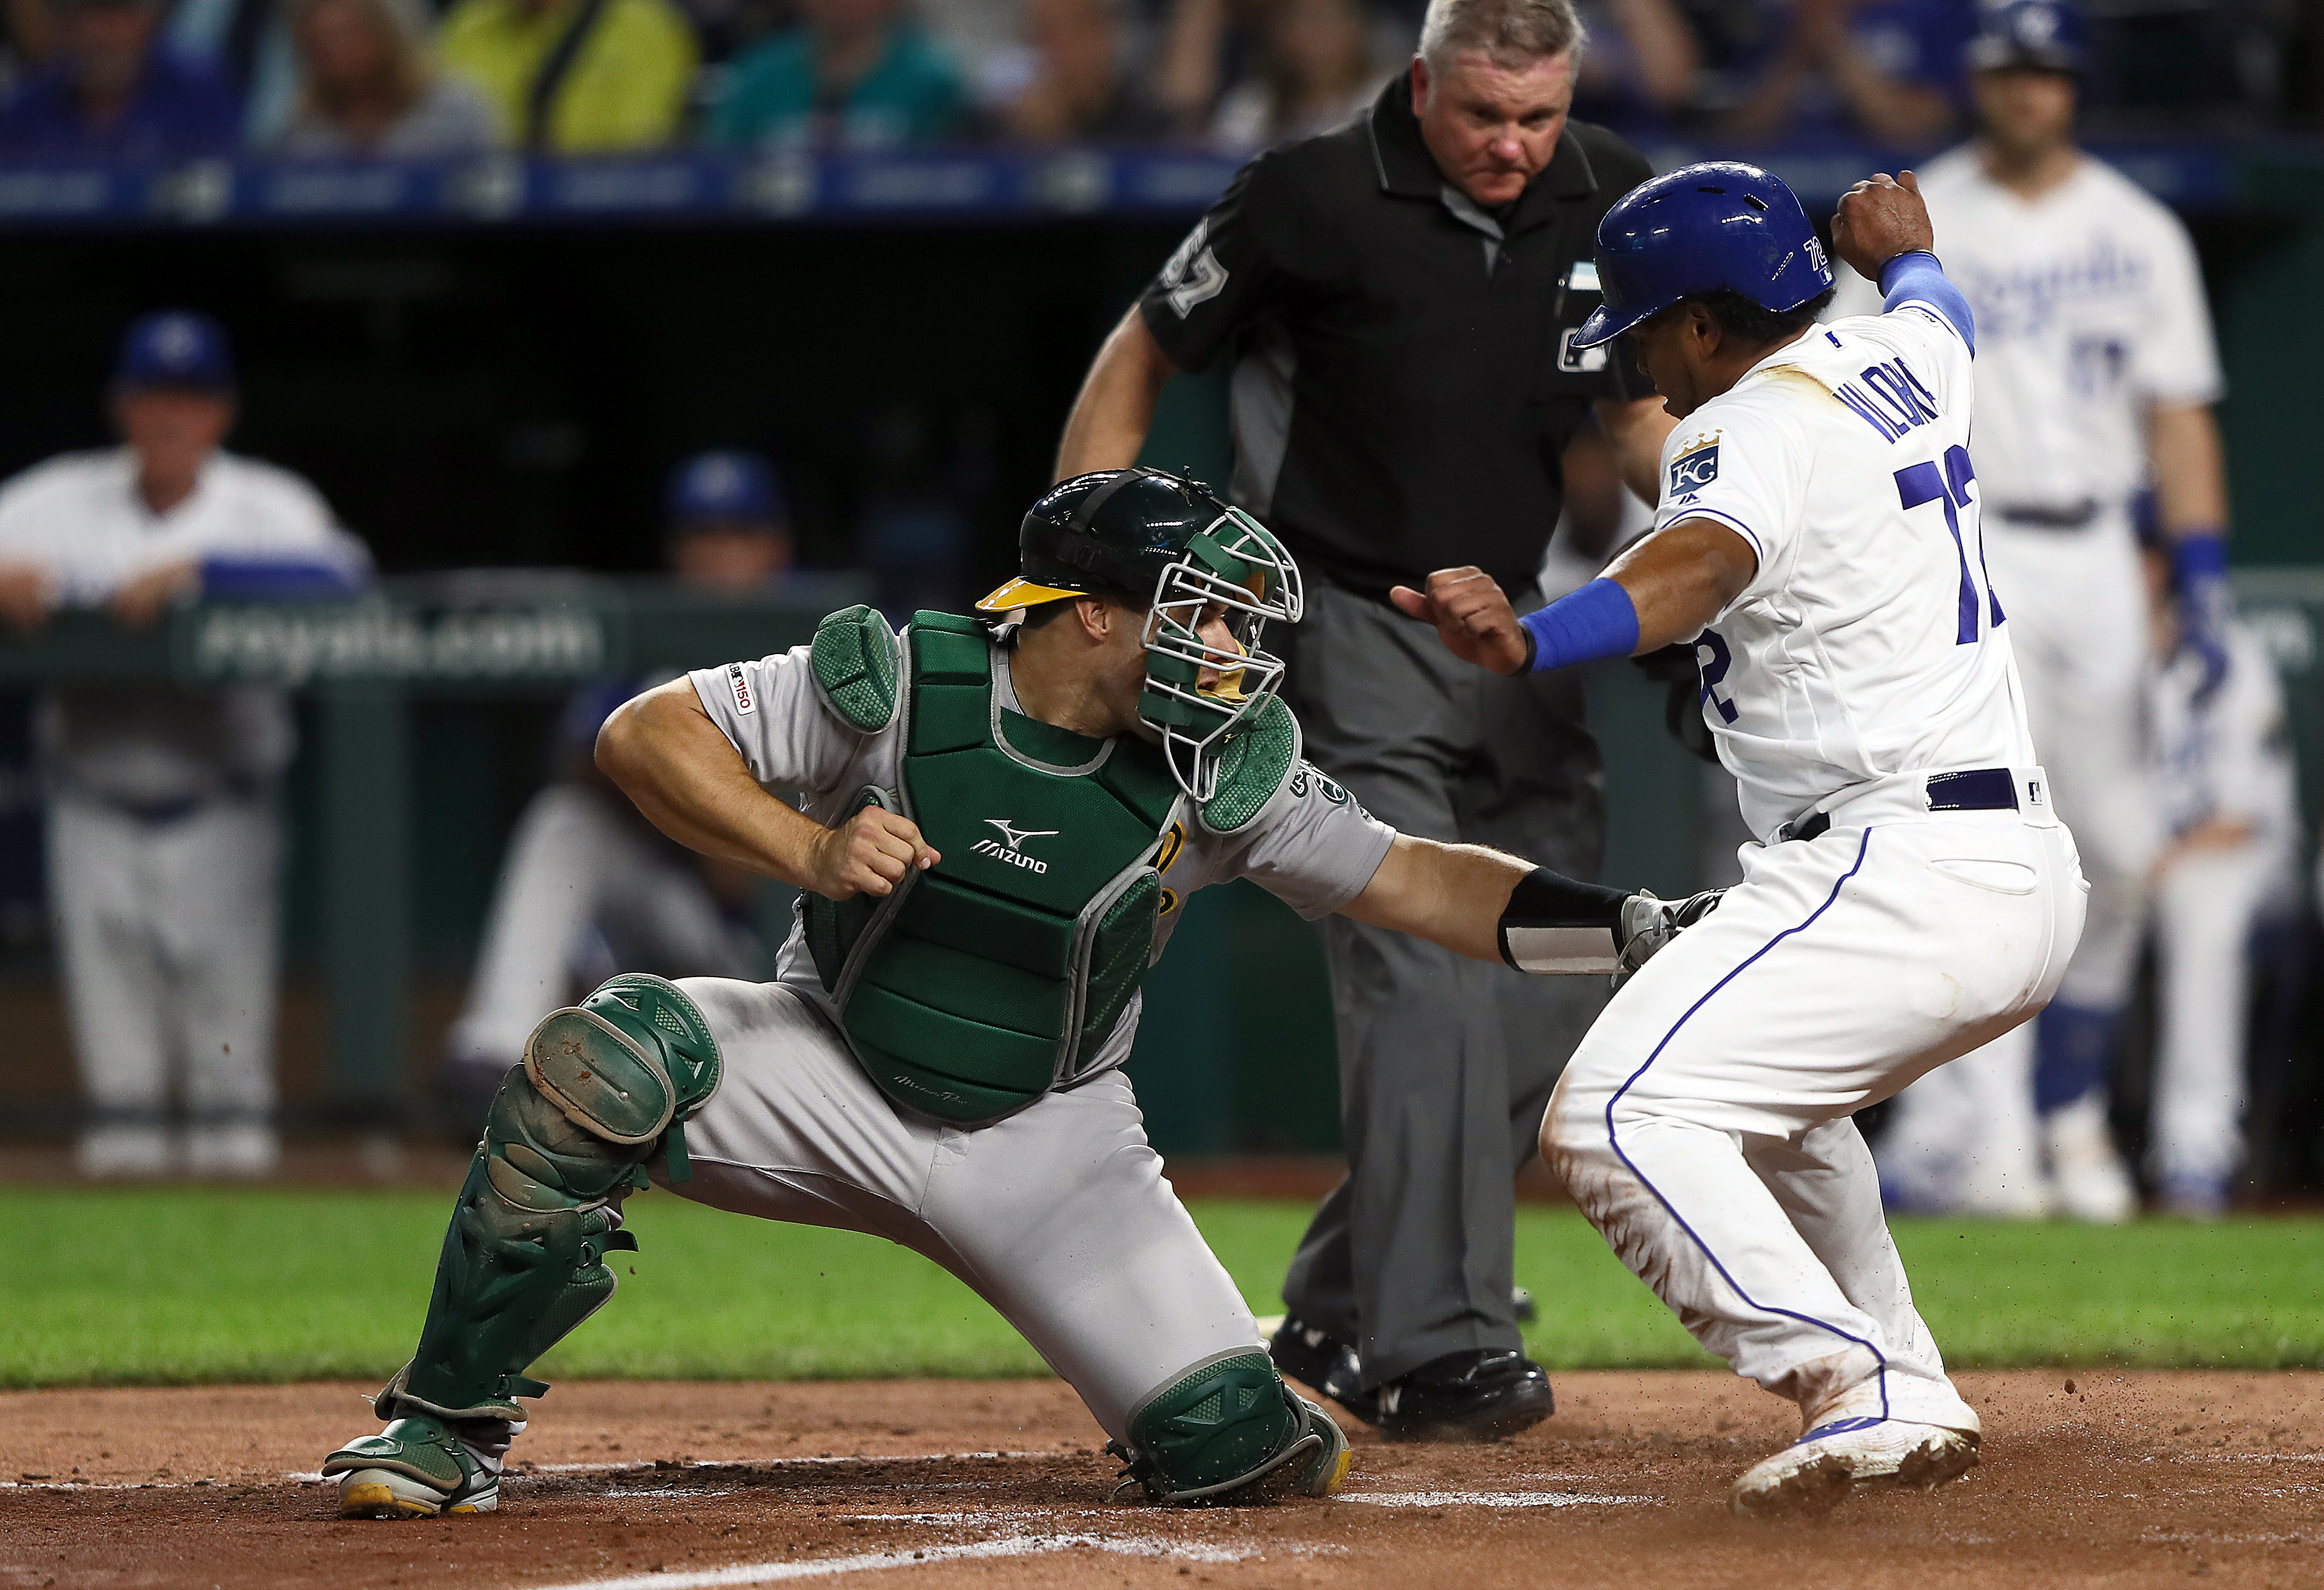 Catcher Josh Phegley #19 of the Oakland Athletics tags out Meibrys Viloria #72 of the Kansas City Royals at home plate during the 3rd inning of the game at Kauffman Stadium on August 27, 2019 in Kansas City, Missouri.